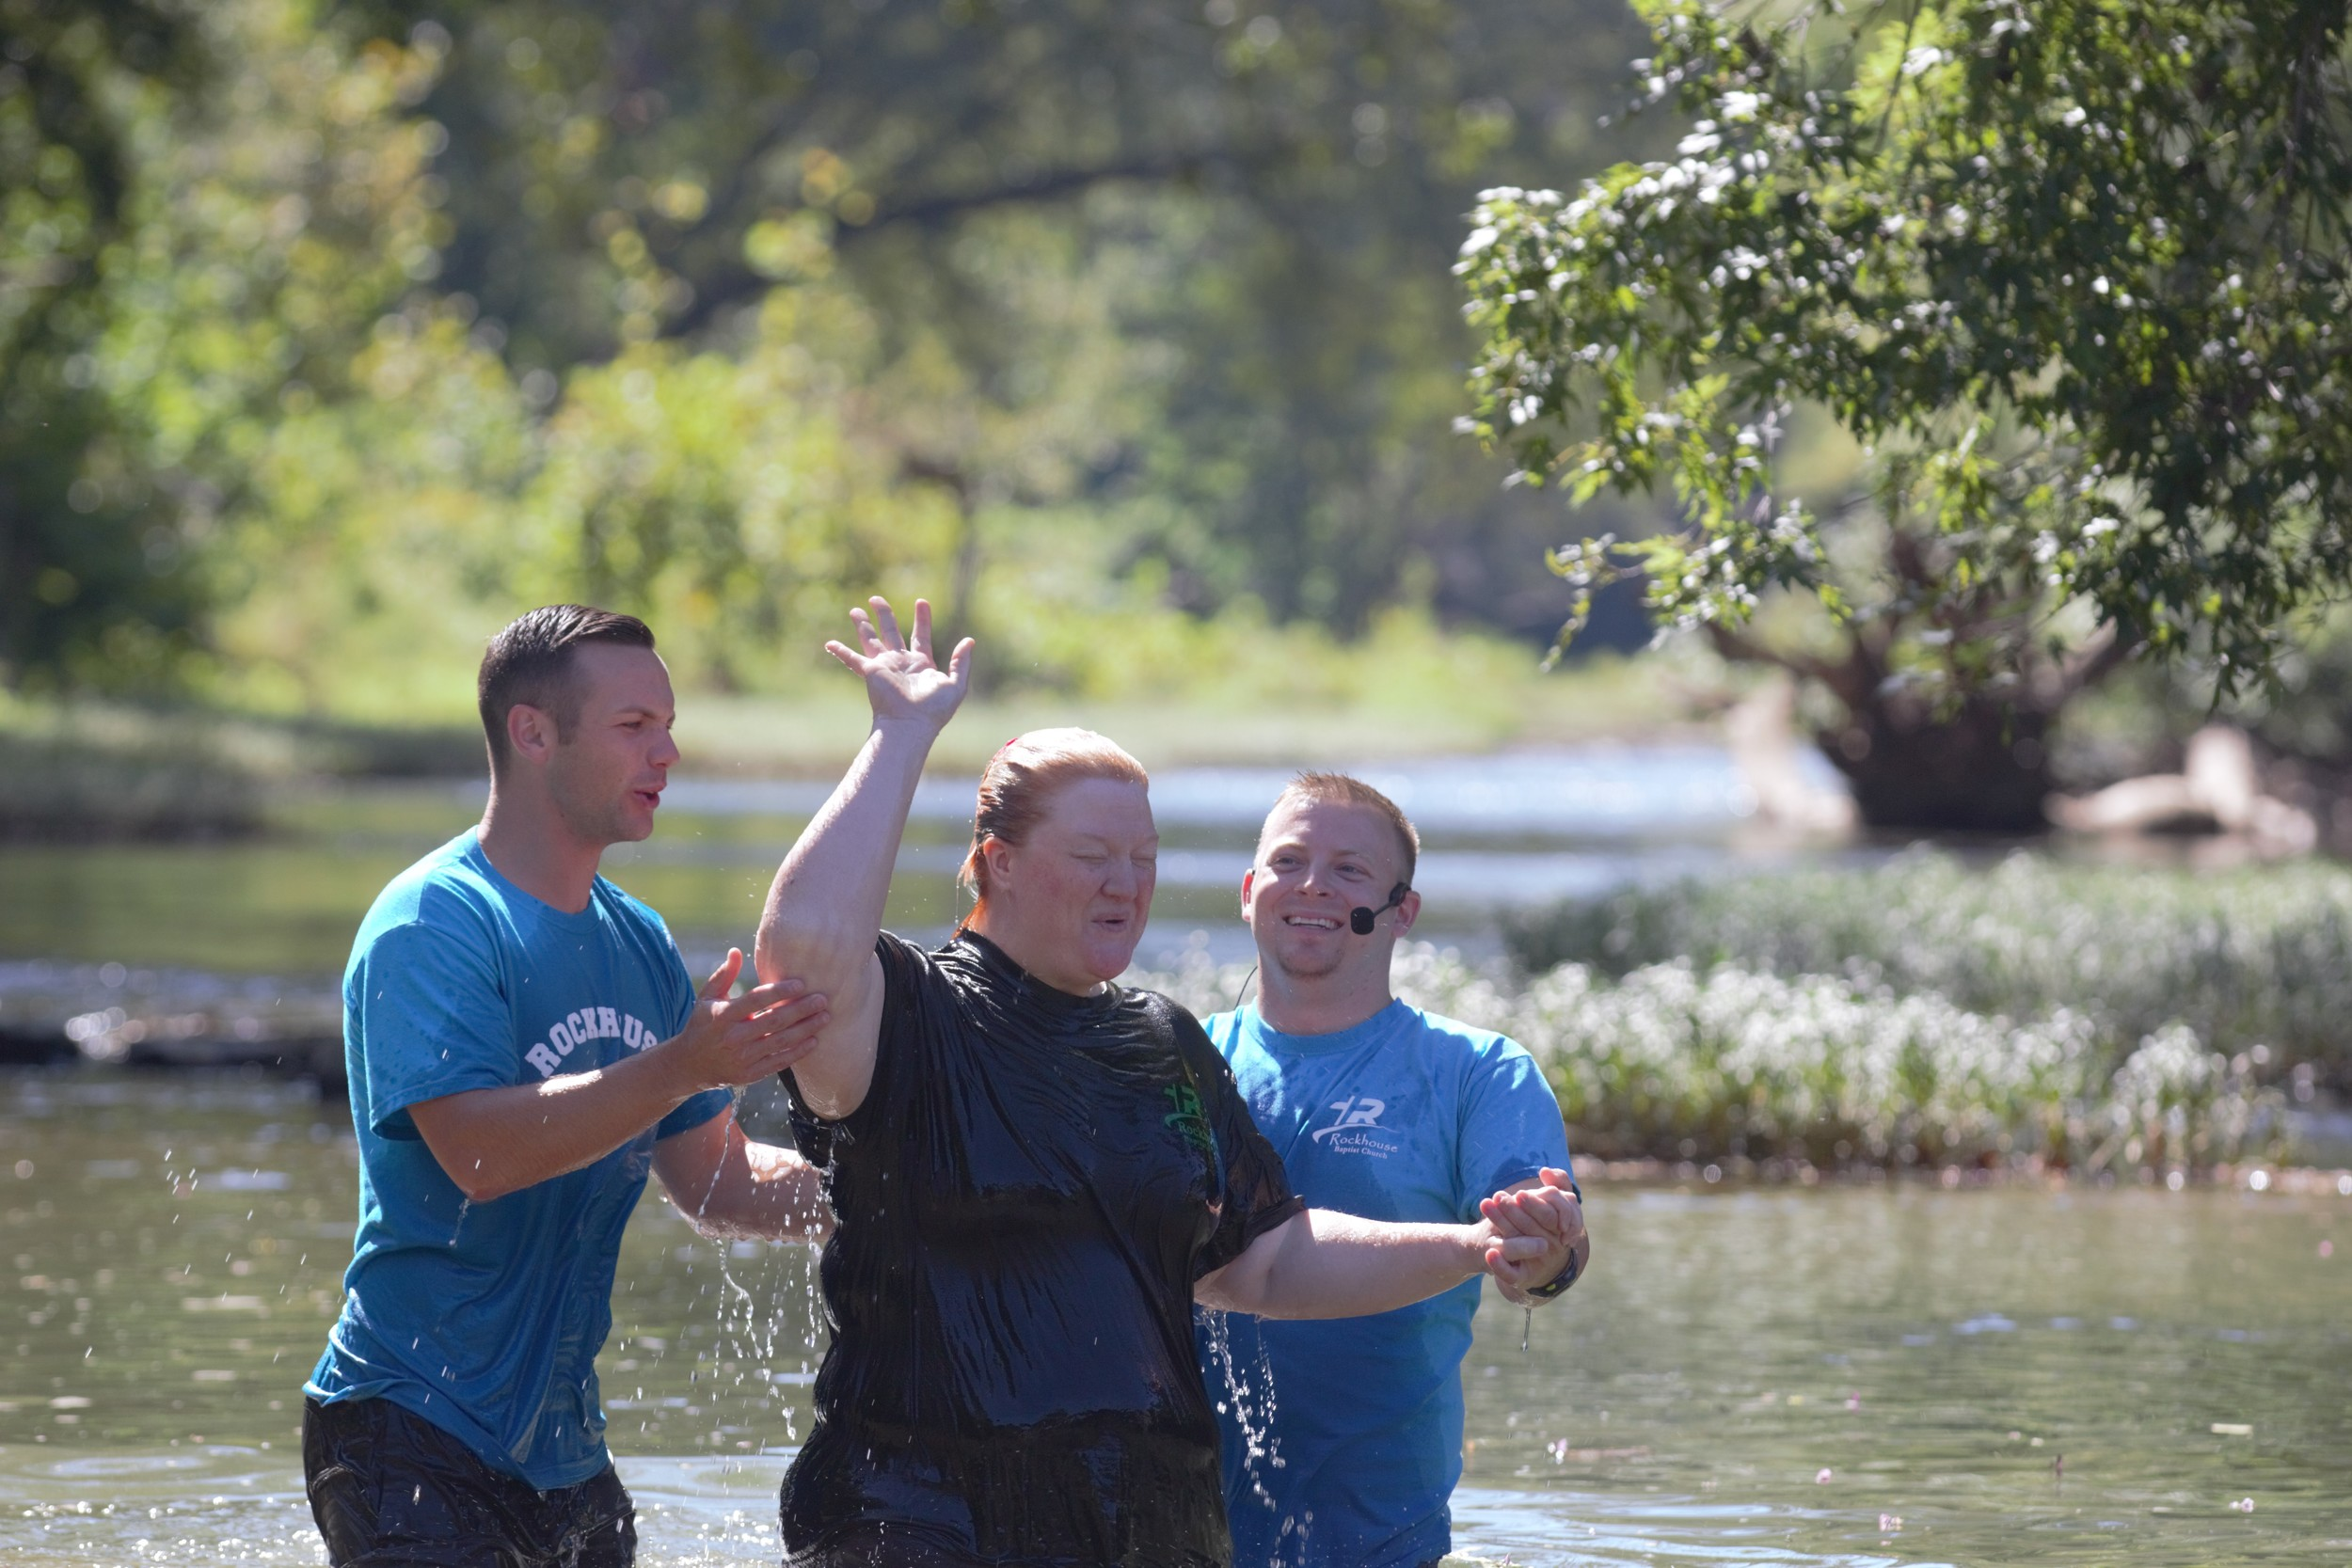 Rockhouse Baptist Church Pastor Tyler Shields, right, baptizes one of about 20 people in the Middle Fork of the Kentucky River. (Kentucky Today/Roger Alford)